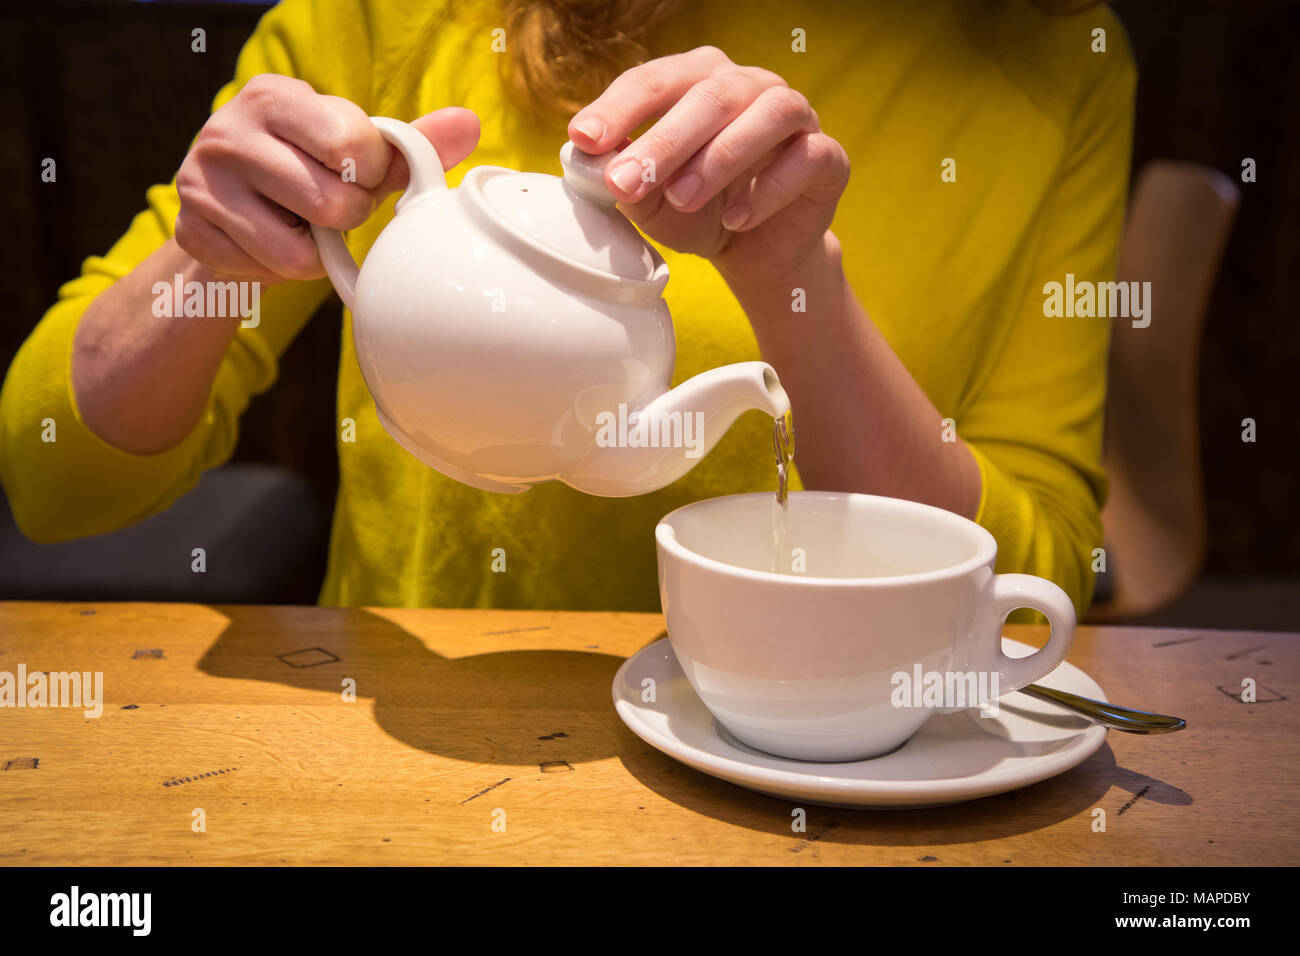 Hand Holding A Teapot Pouring Tea In A White Cup Stock Photo Alamy Hd wallpaper tea cup kettle hands